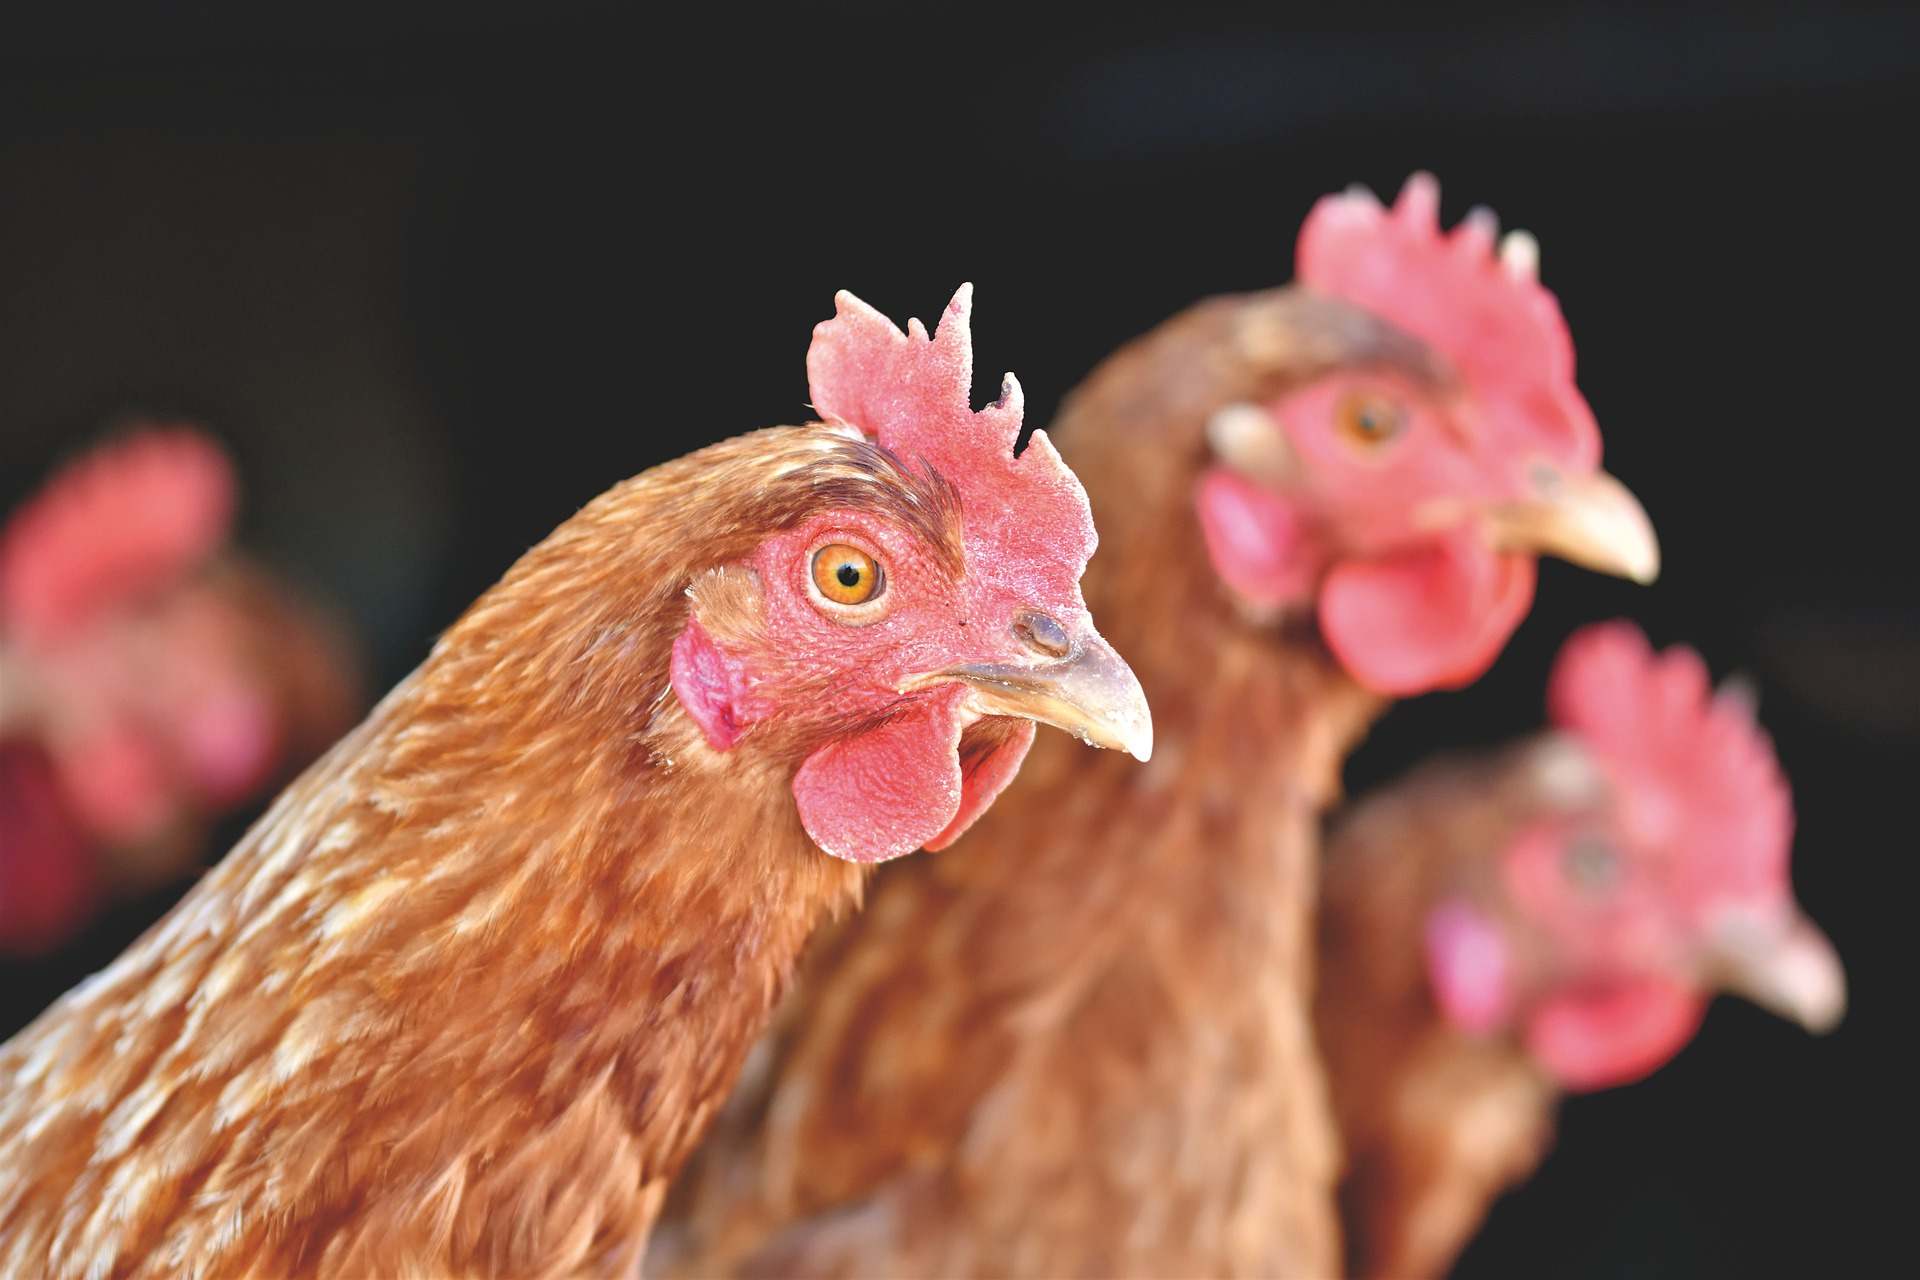 Portrait image of three hens/chickens - poultry farming.